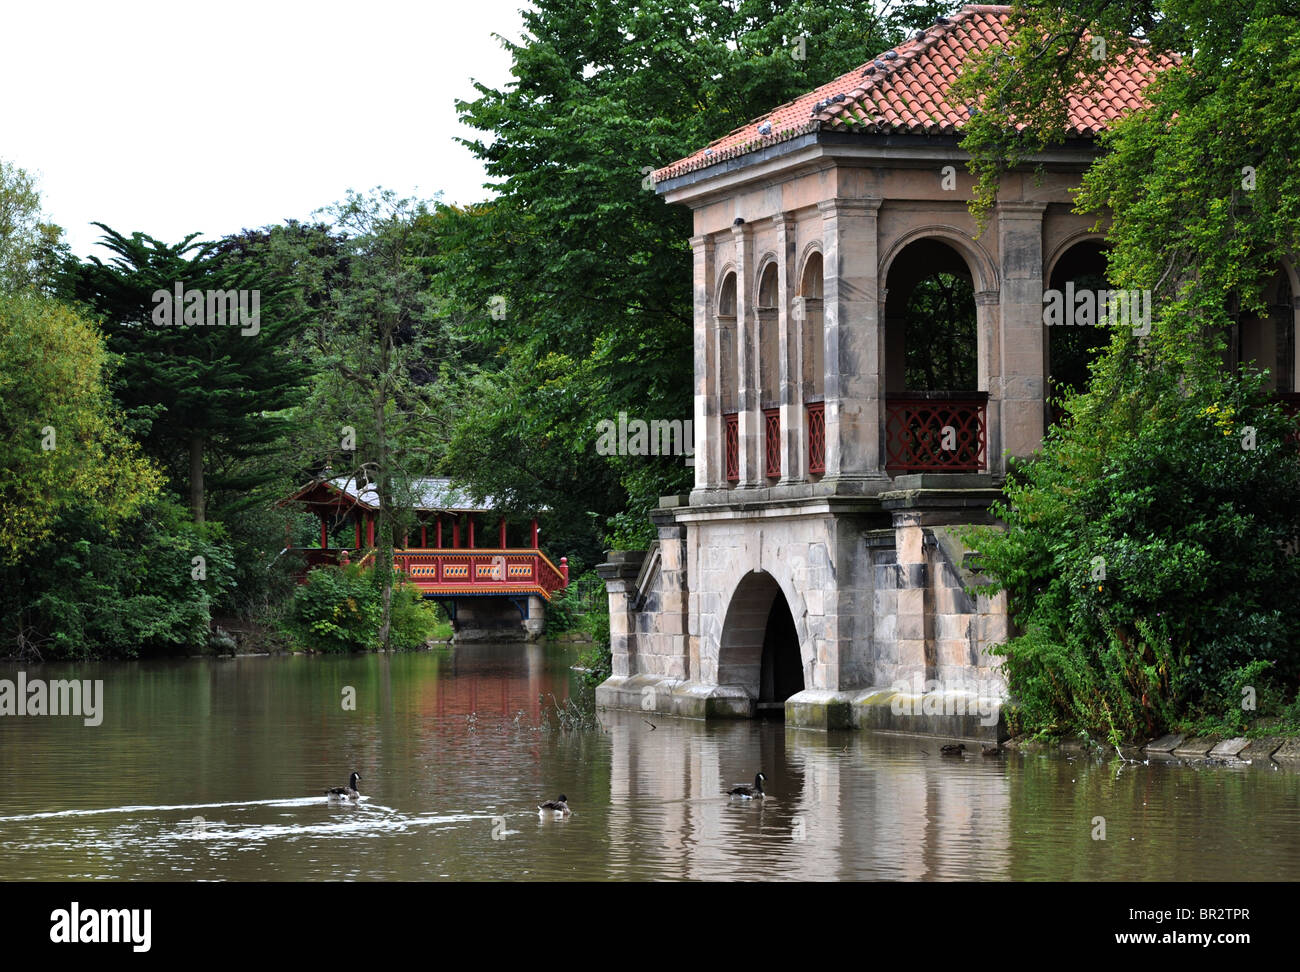 The Boathouse and Swiss Bridge in Birkenhead park, Birkenhead, Wirral, Merseyside - Stock Image